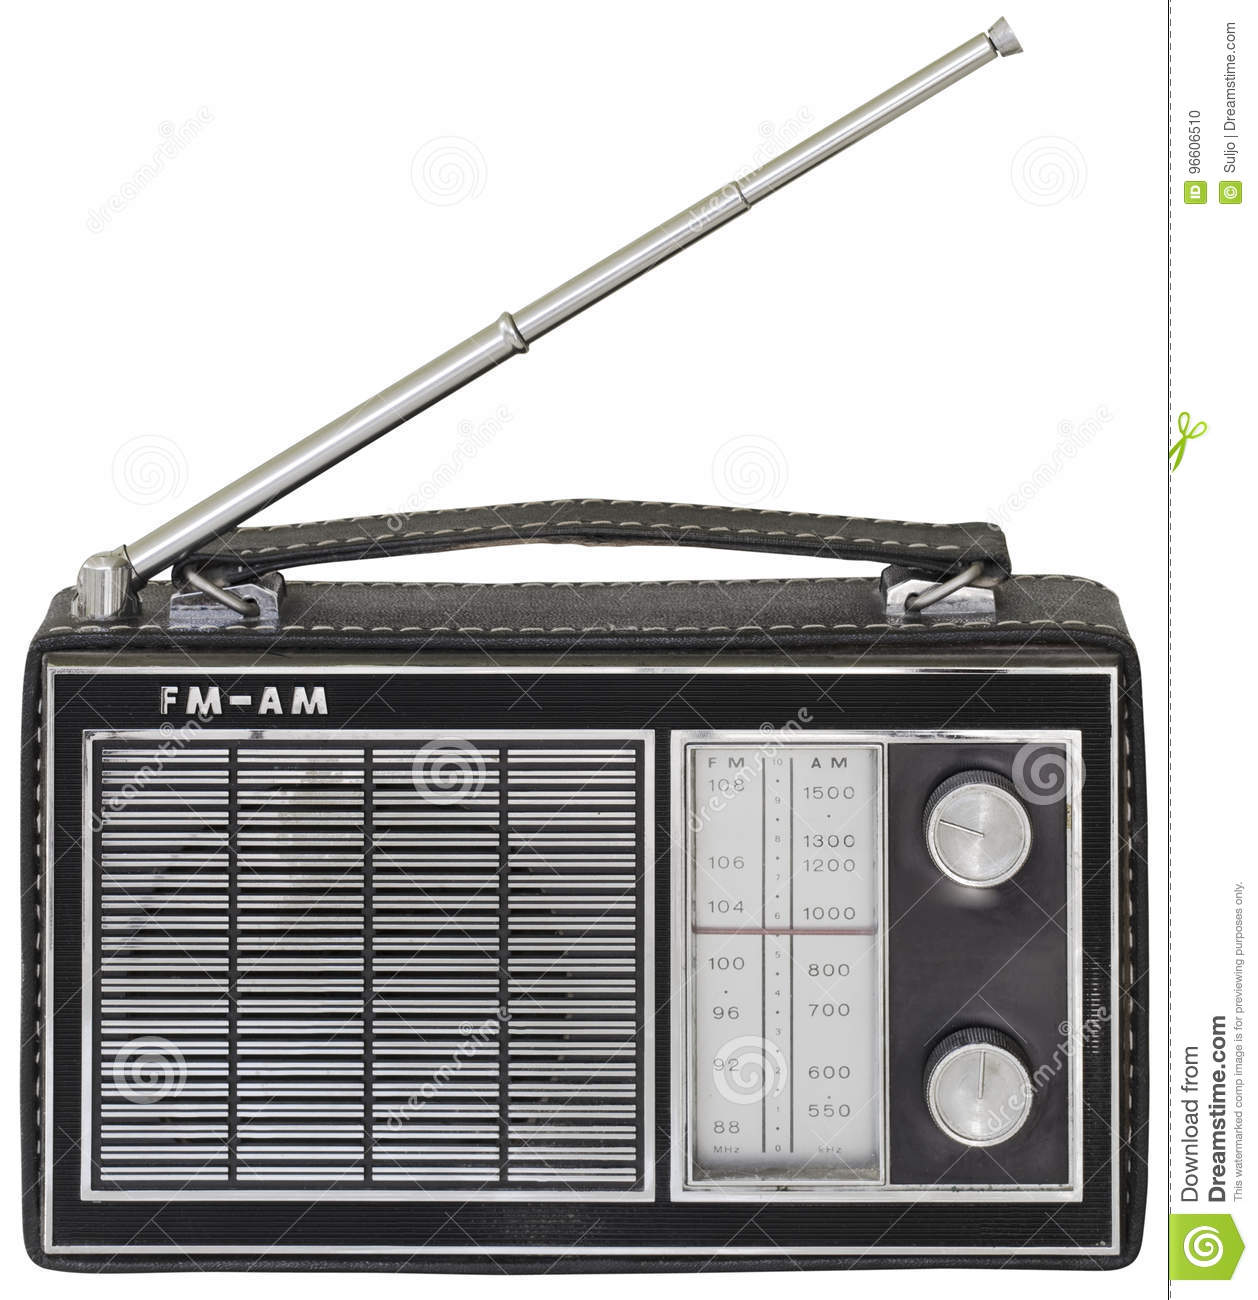 Old Portable Radio Cutout Stock Photo Image Of Path 96606510